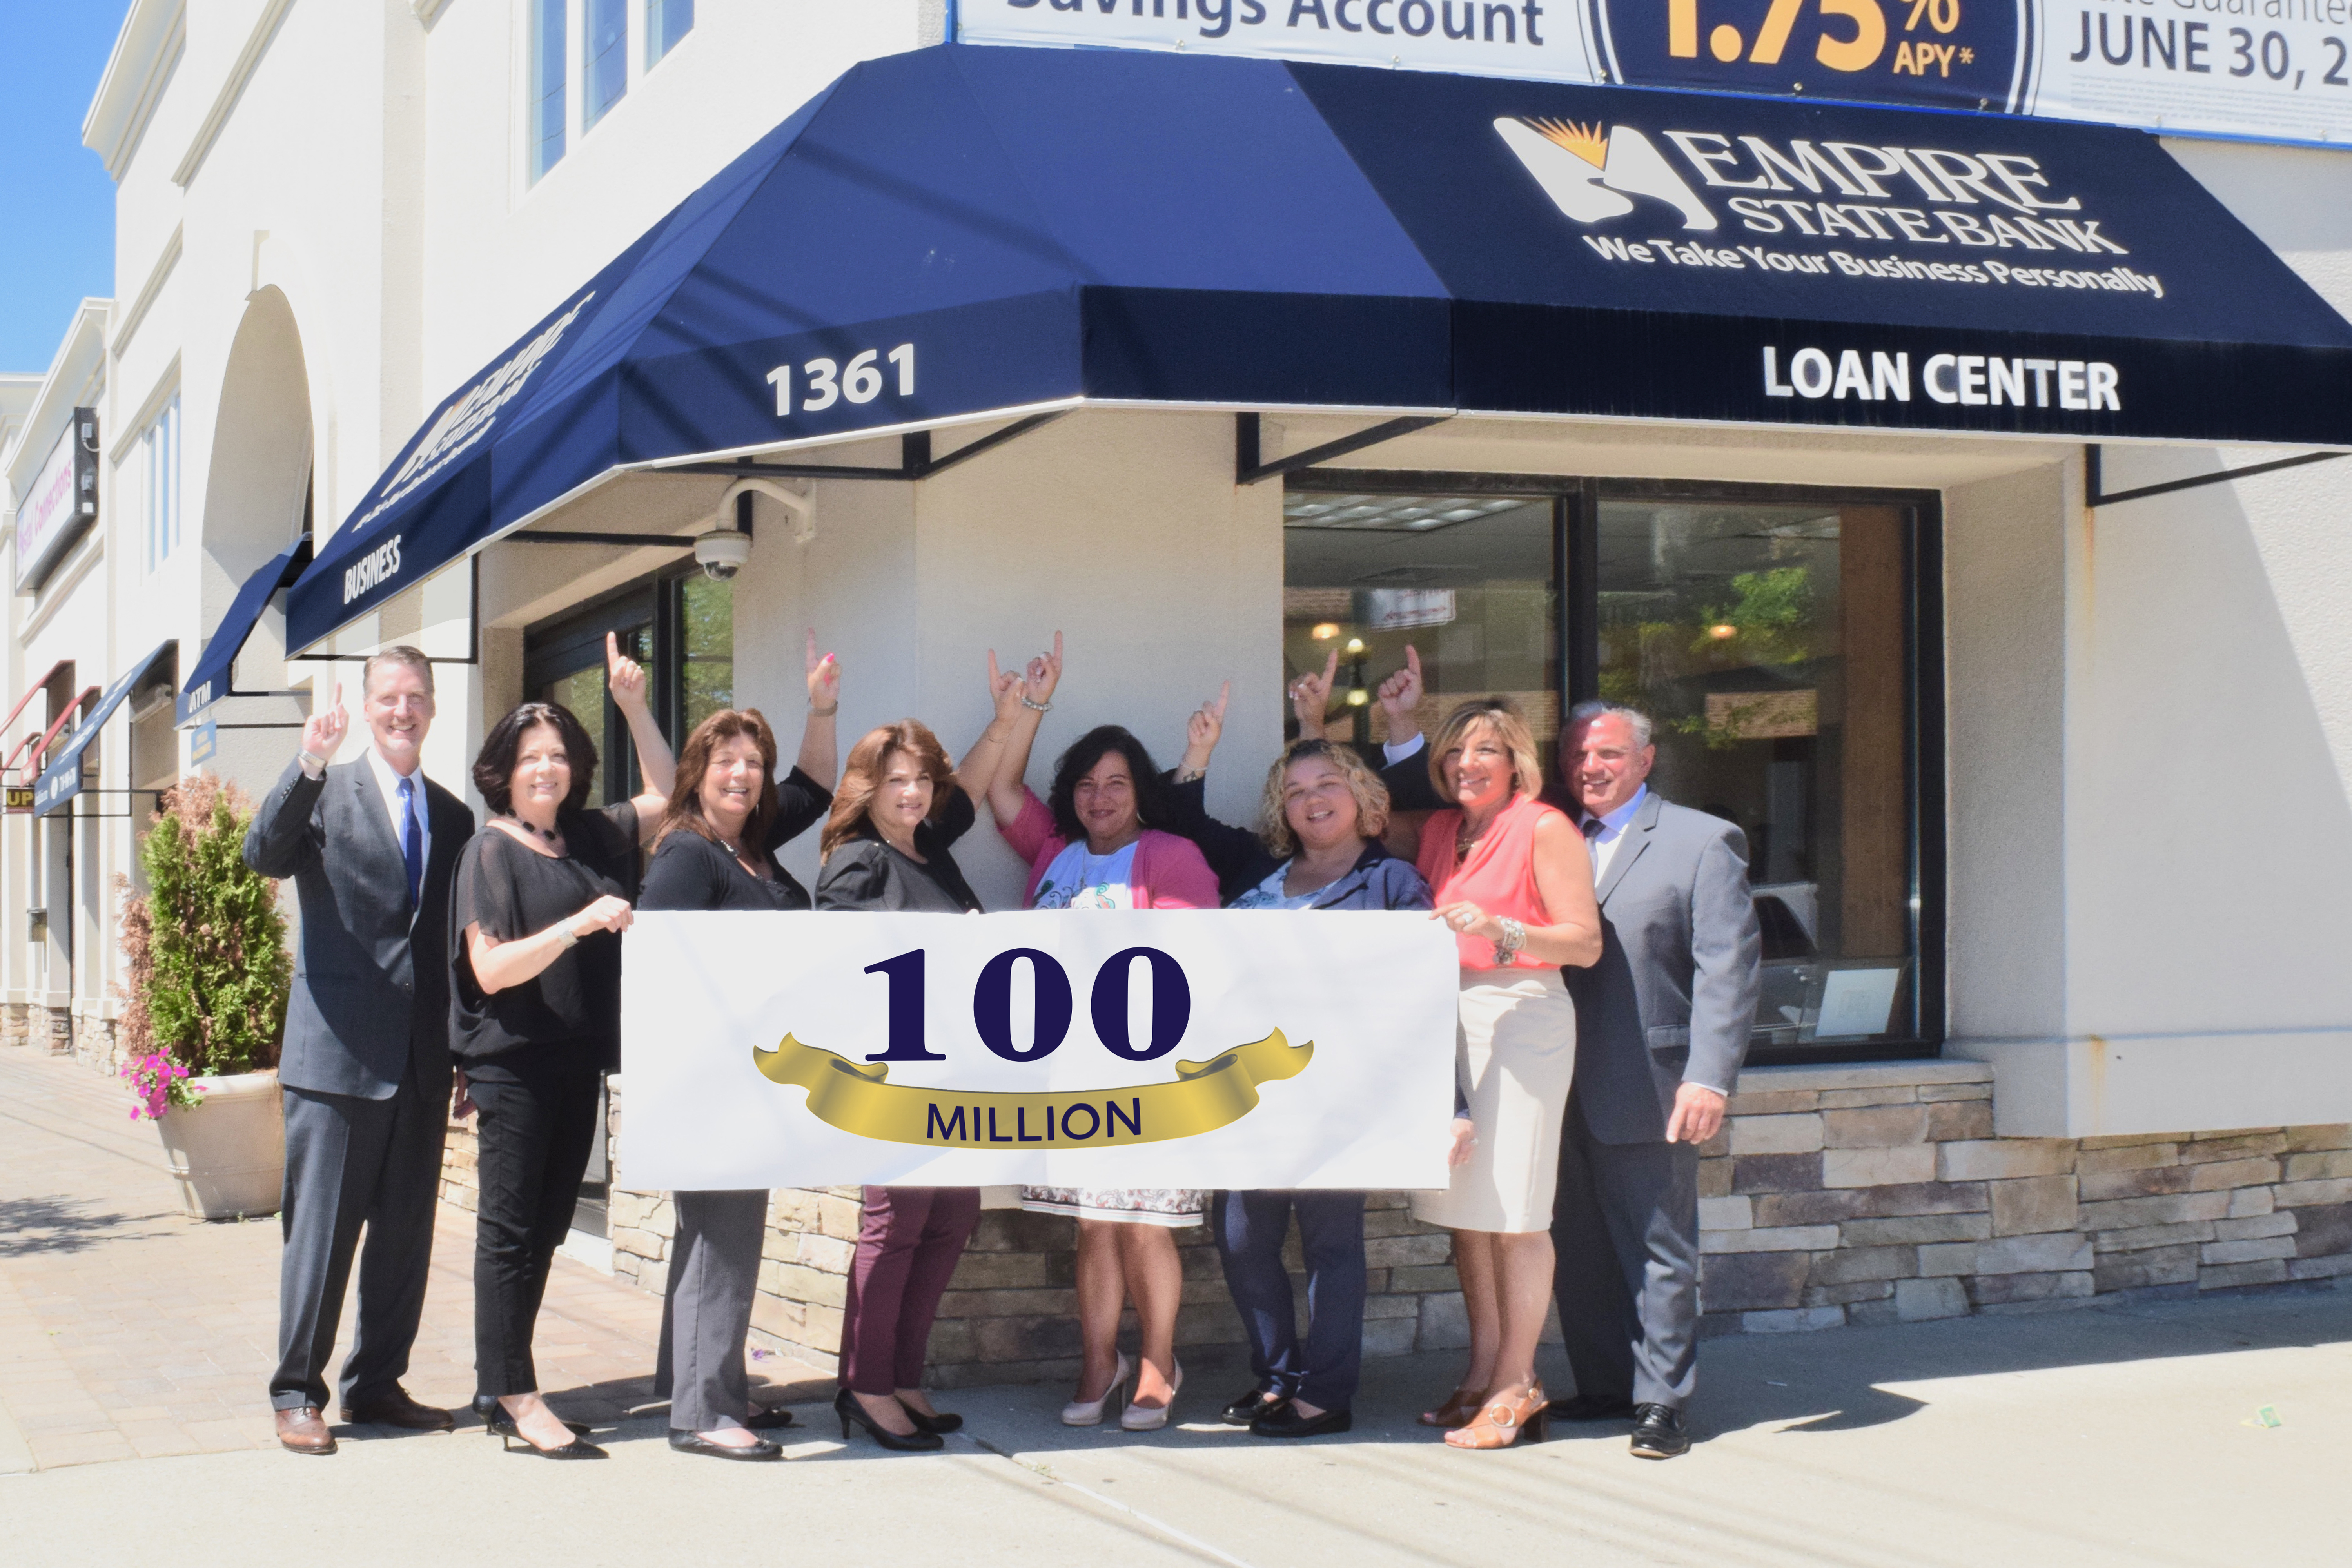 Empire State Bank New Dorp Milestone